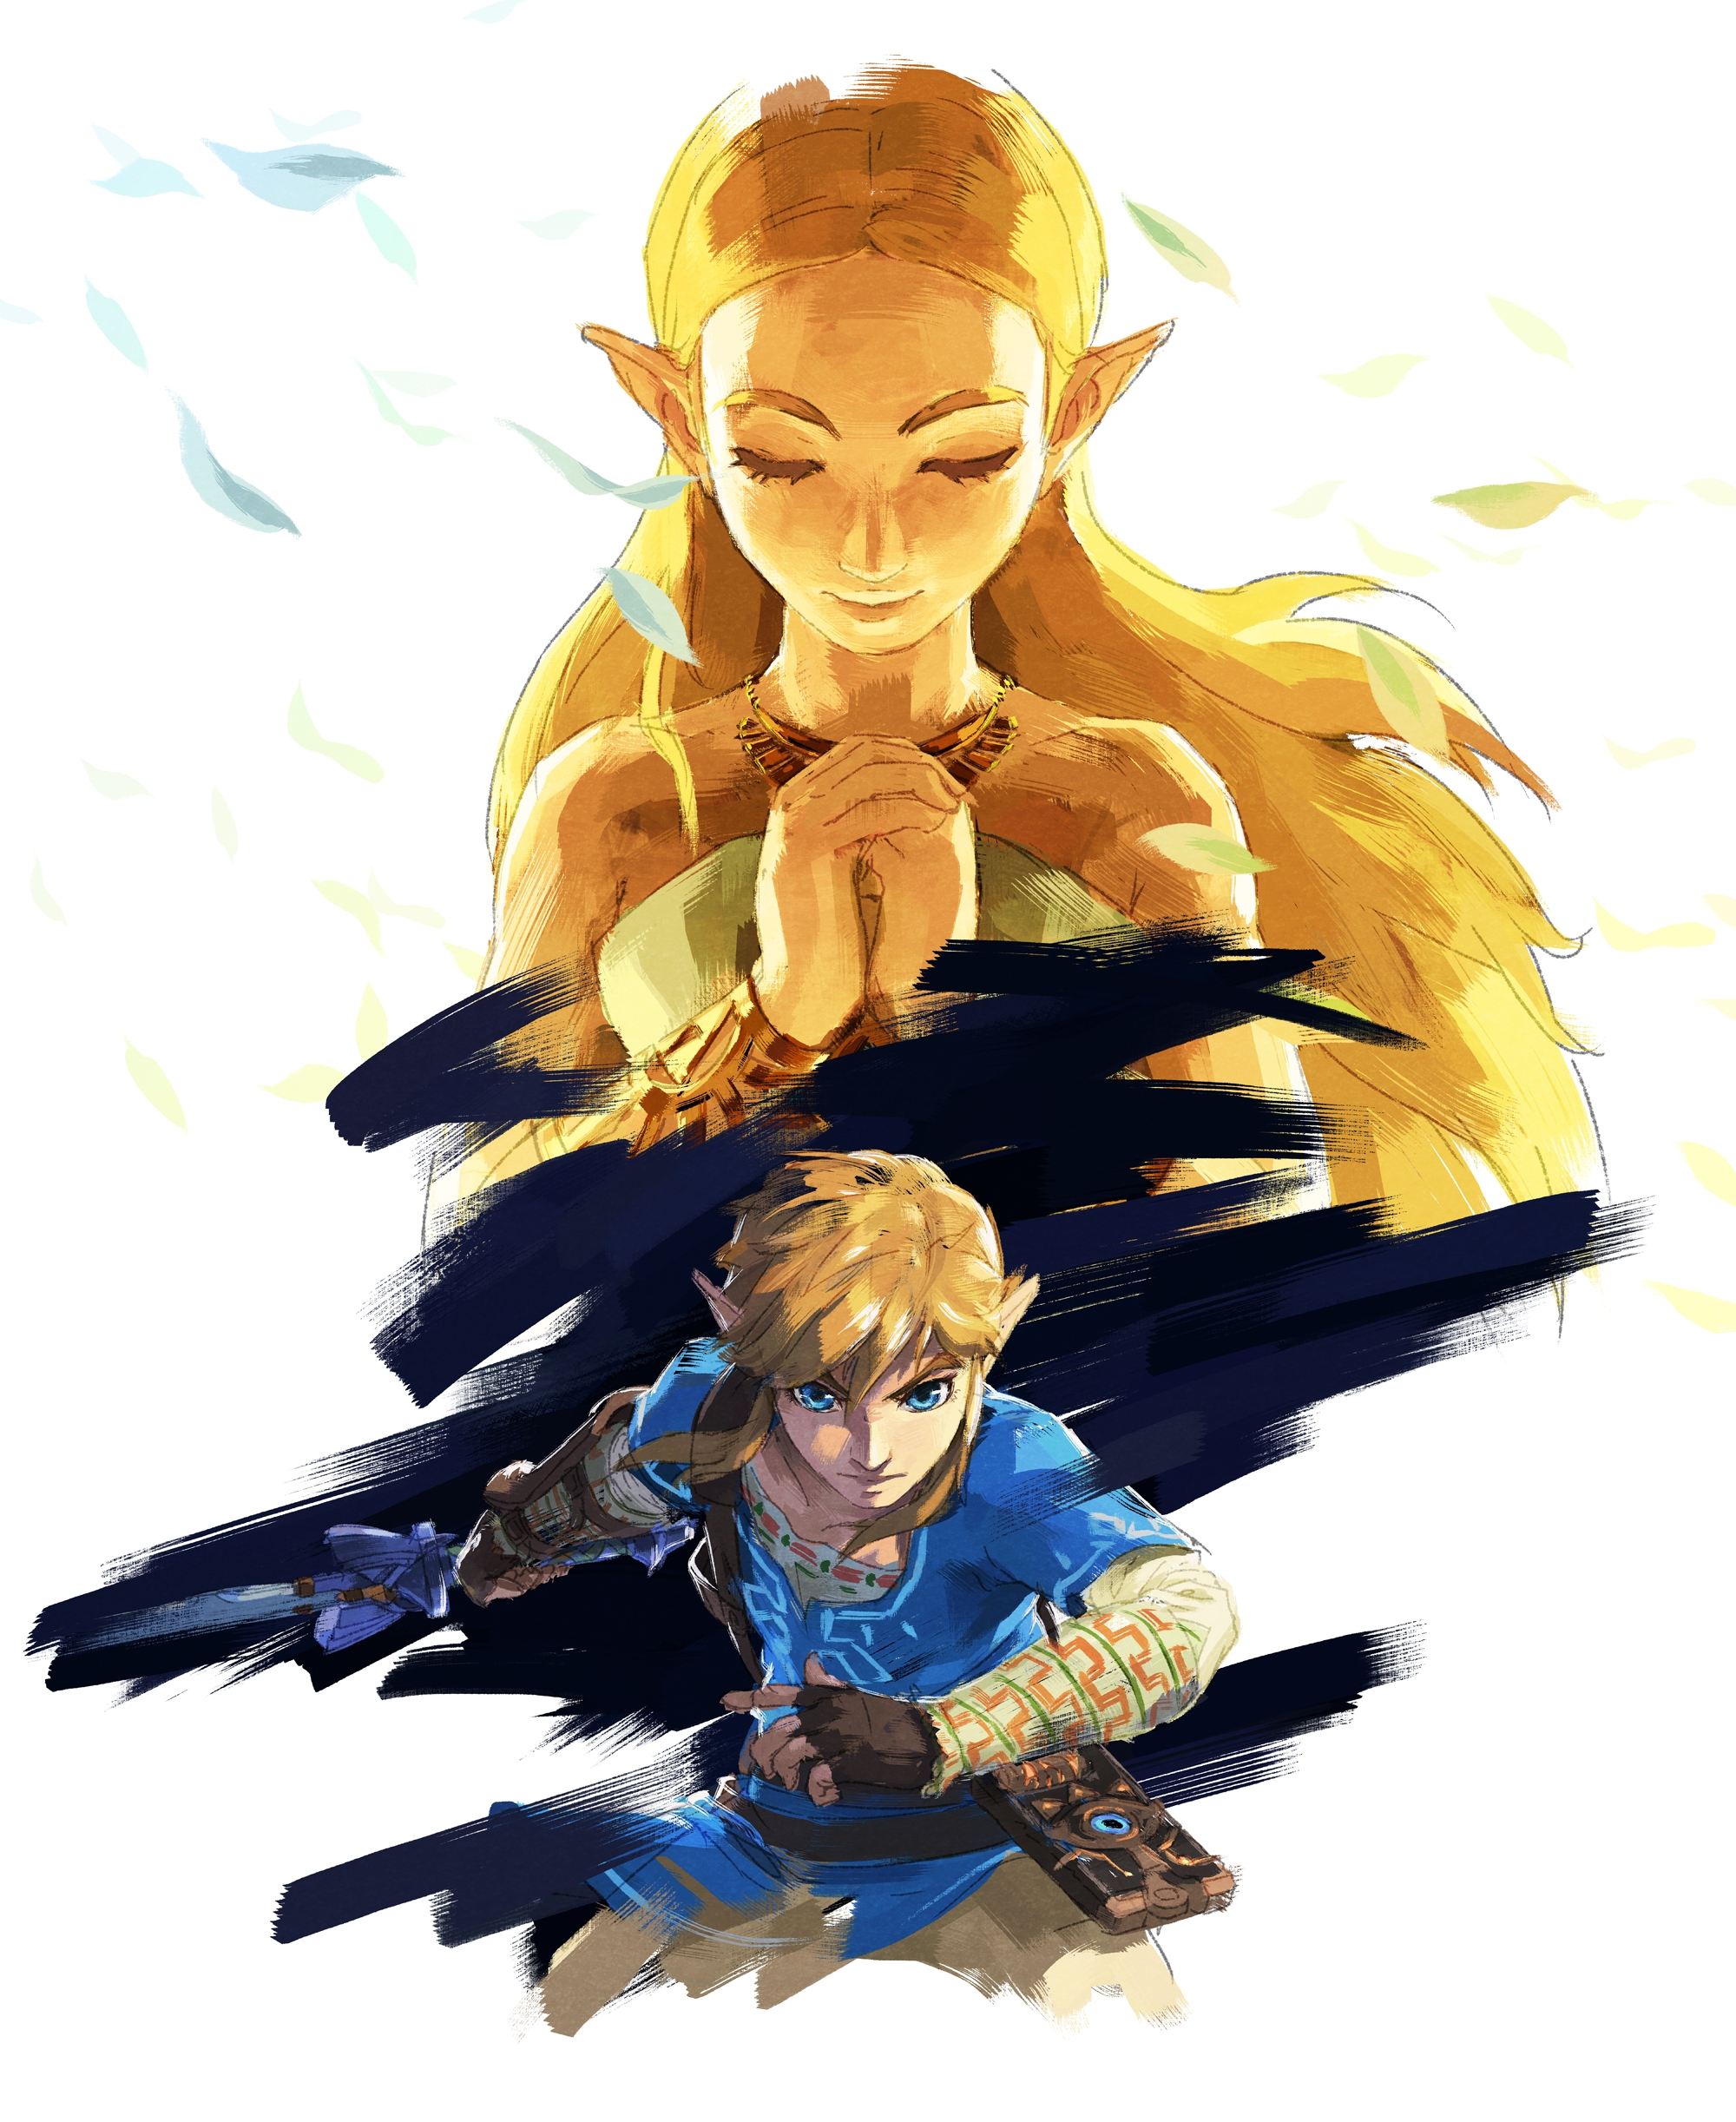 The Legend of Zelda: Breath of the Wild for the Nintendo Switch and Wii U consoles is one of the largest, most engaging video games Nintendo has ever created. (Graphic: Business Wire)